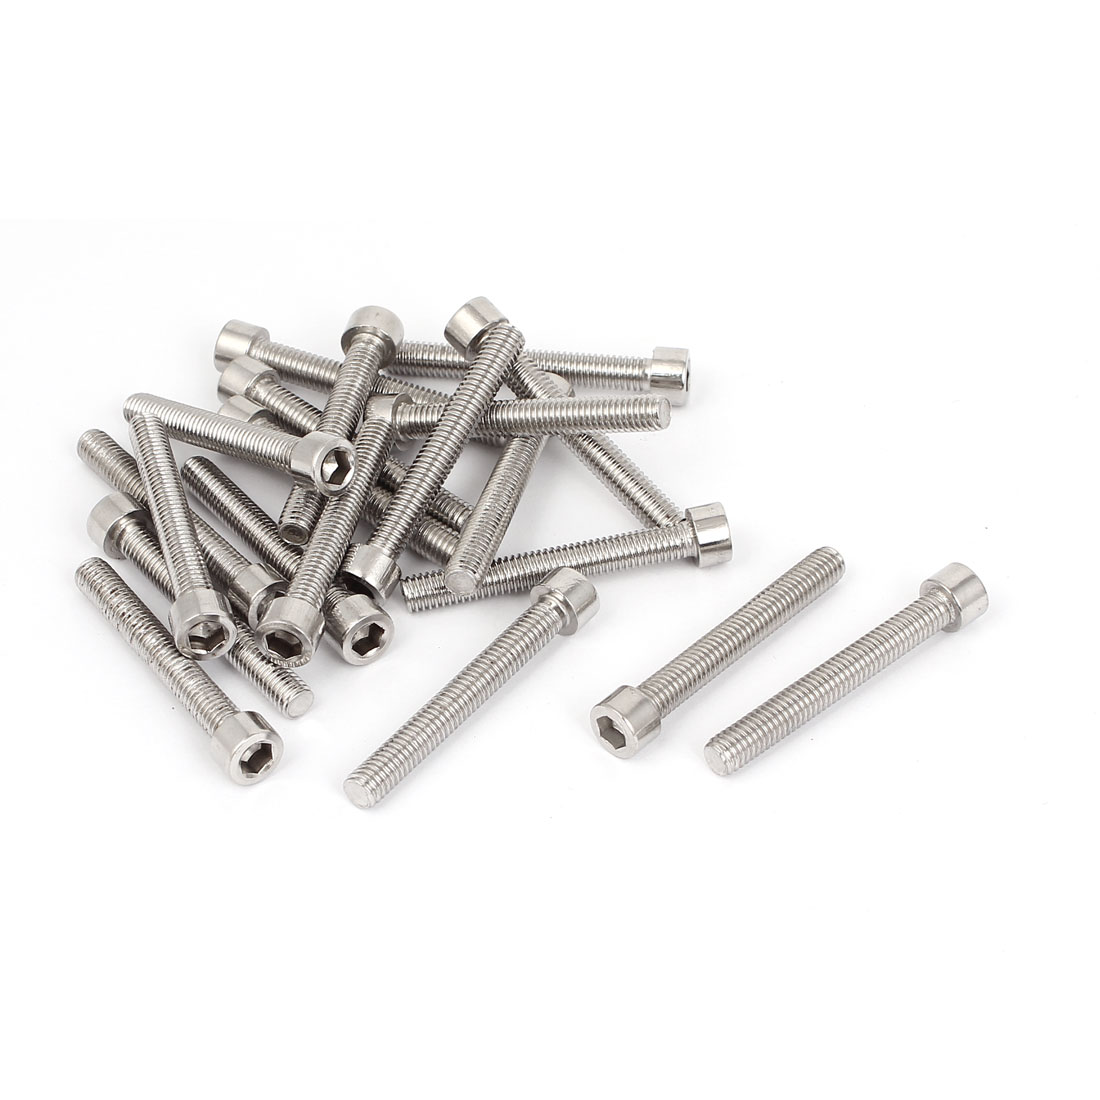 20pcs 50mm Long M6x45mm Stainless Steel Socket Cap Screws Hex Head Bolts DIN912